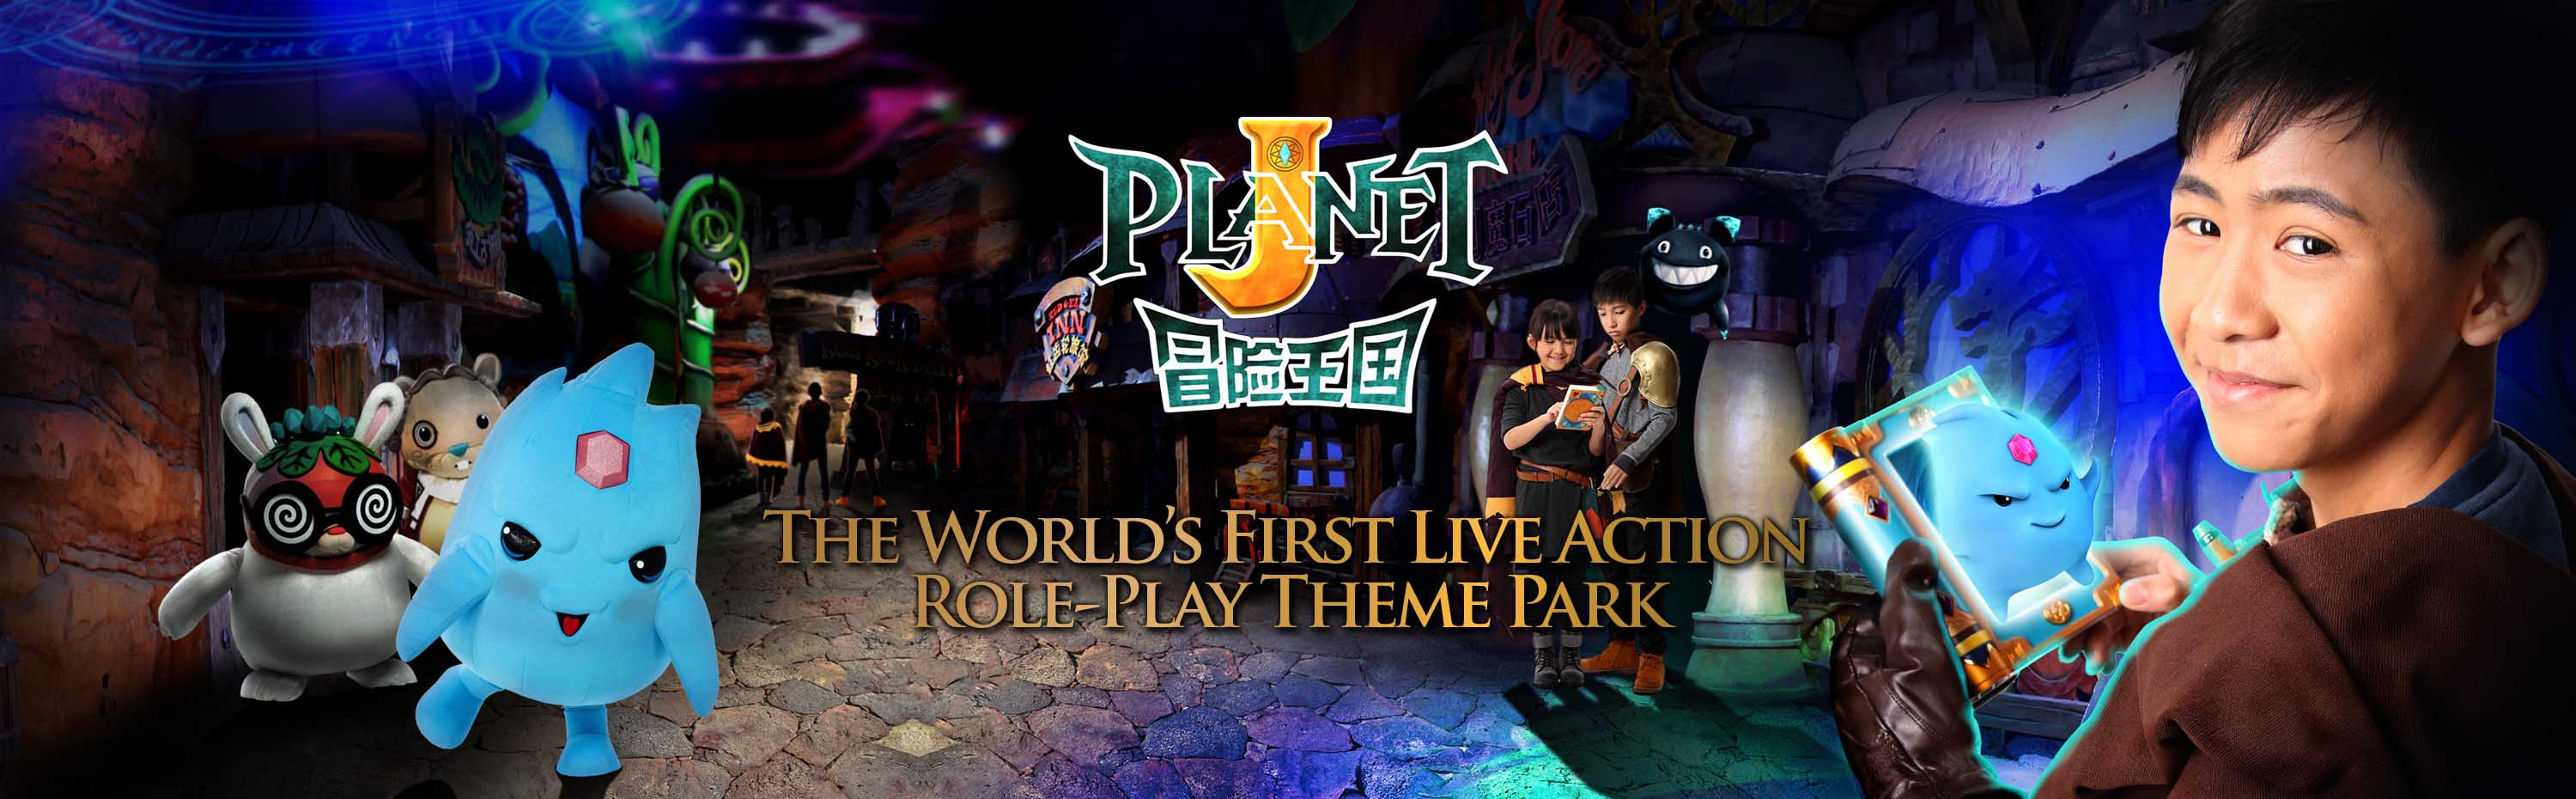 Planet J Theme Park in Macau